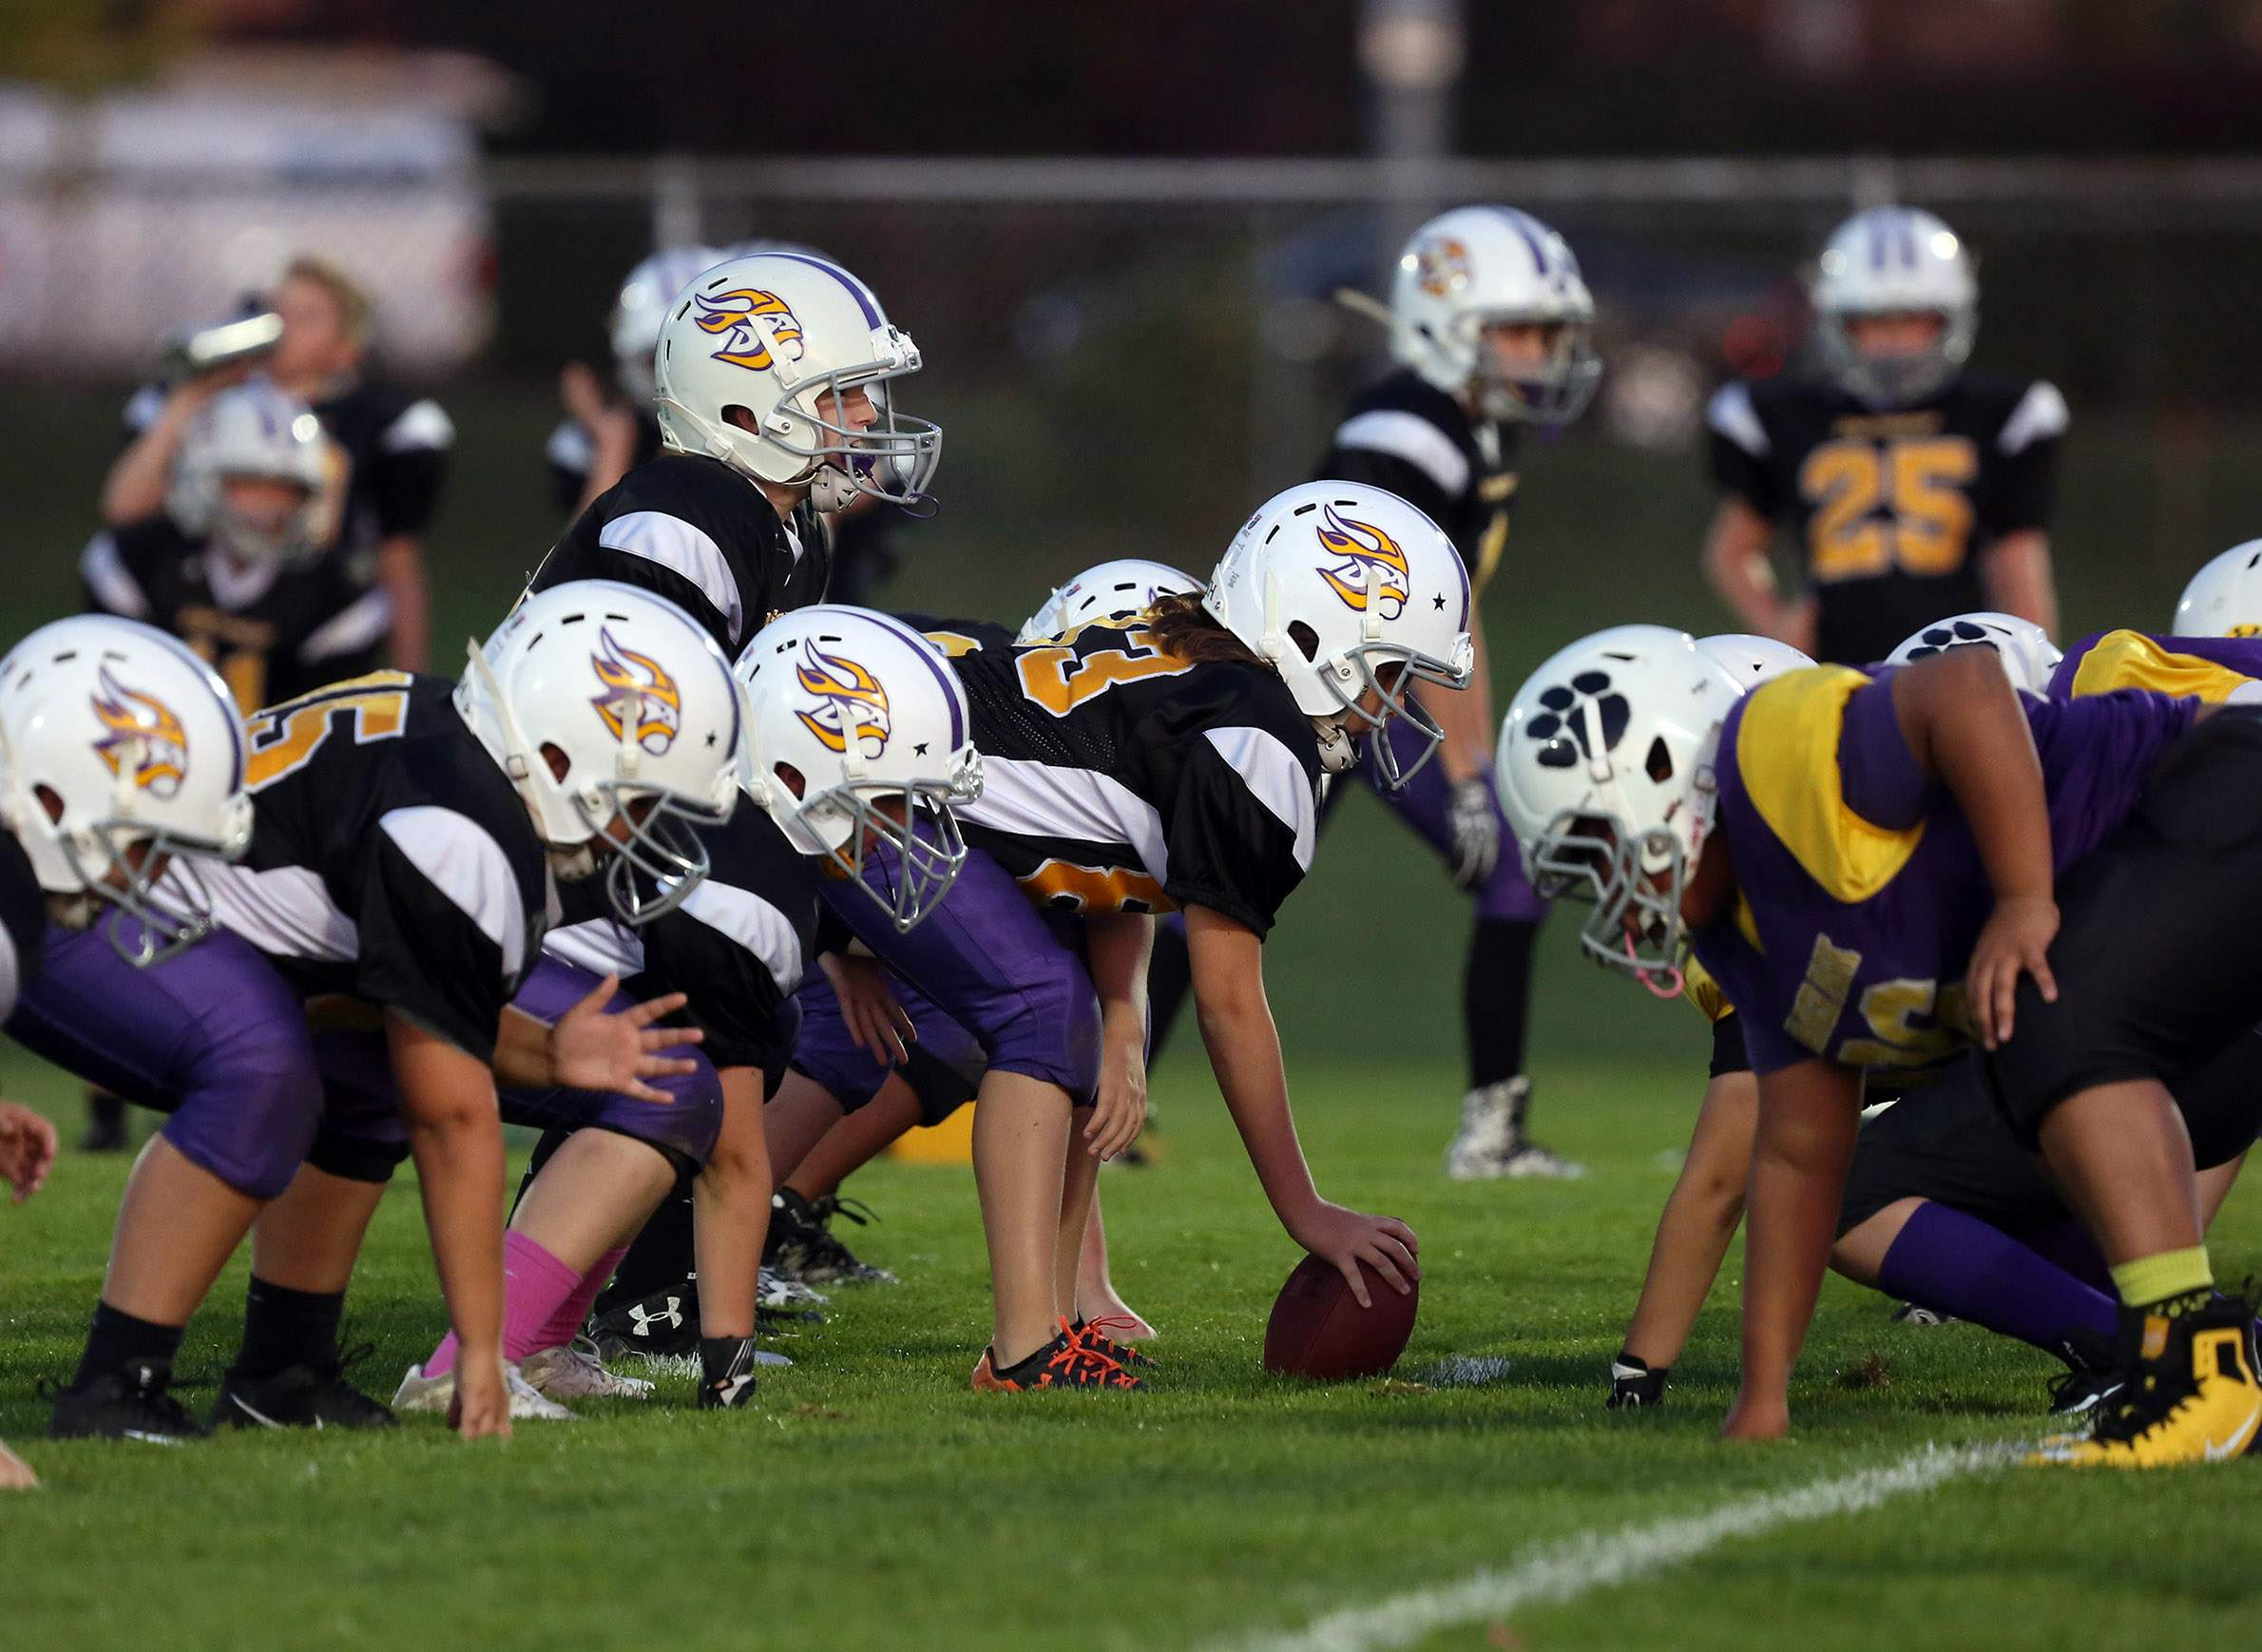 Youth Tackle Football Participation >> The Fallout Of Football Brain Injury Risks For Wisconsin S Youth